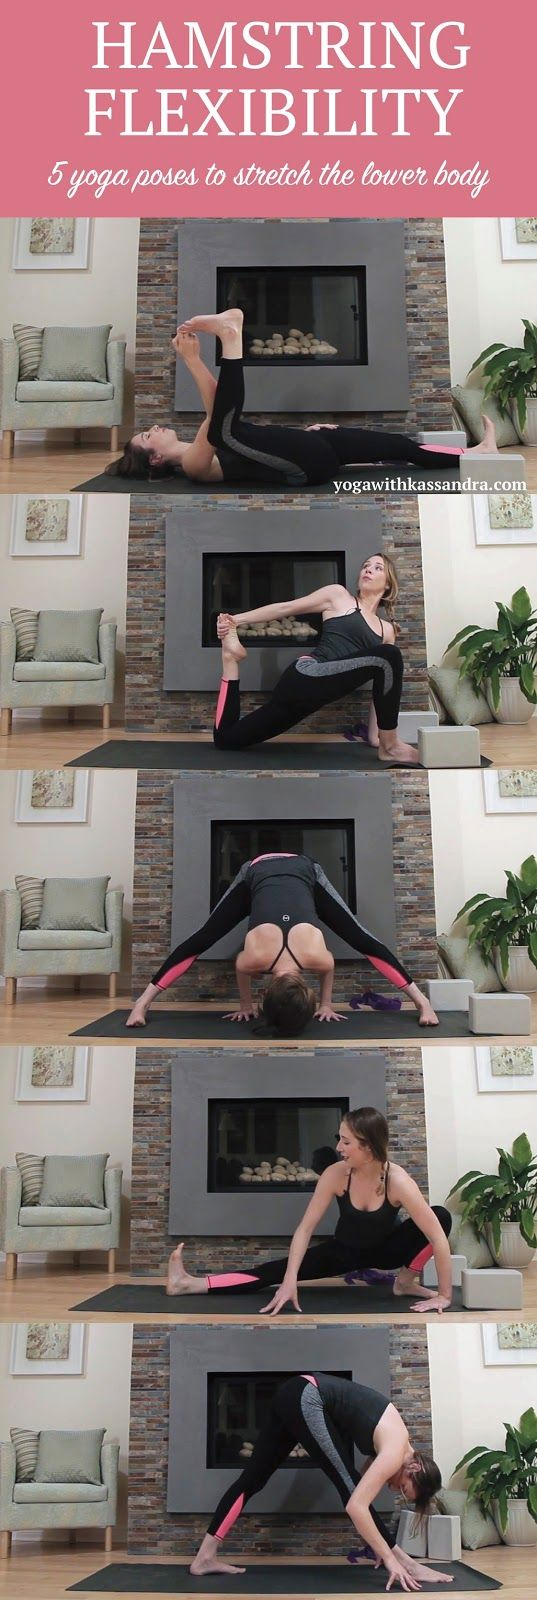 5 Poses for Improving Your Hamstring Flexibility